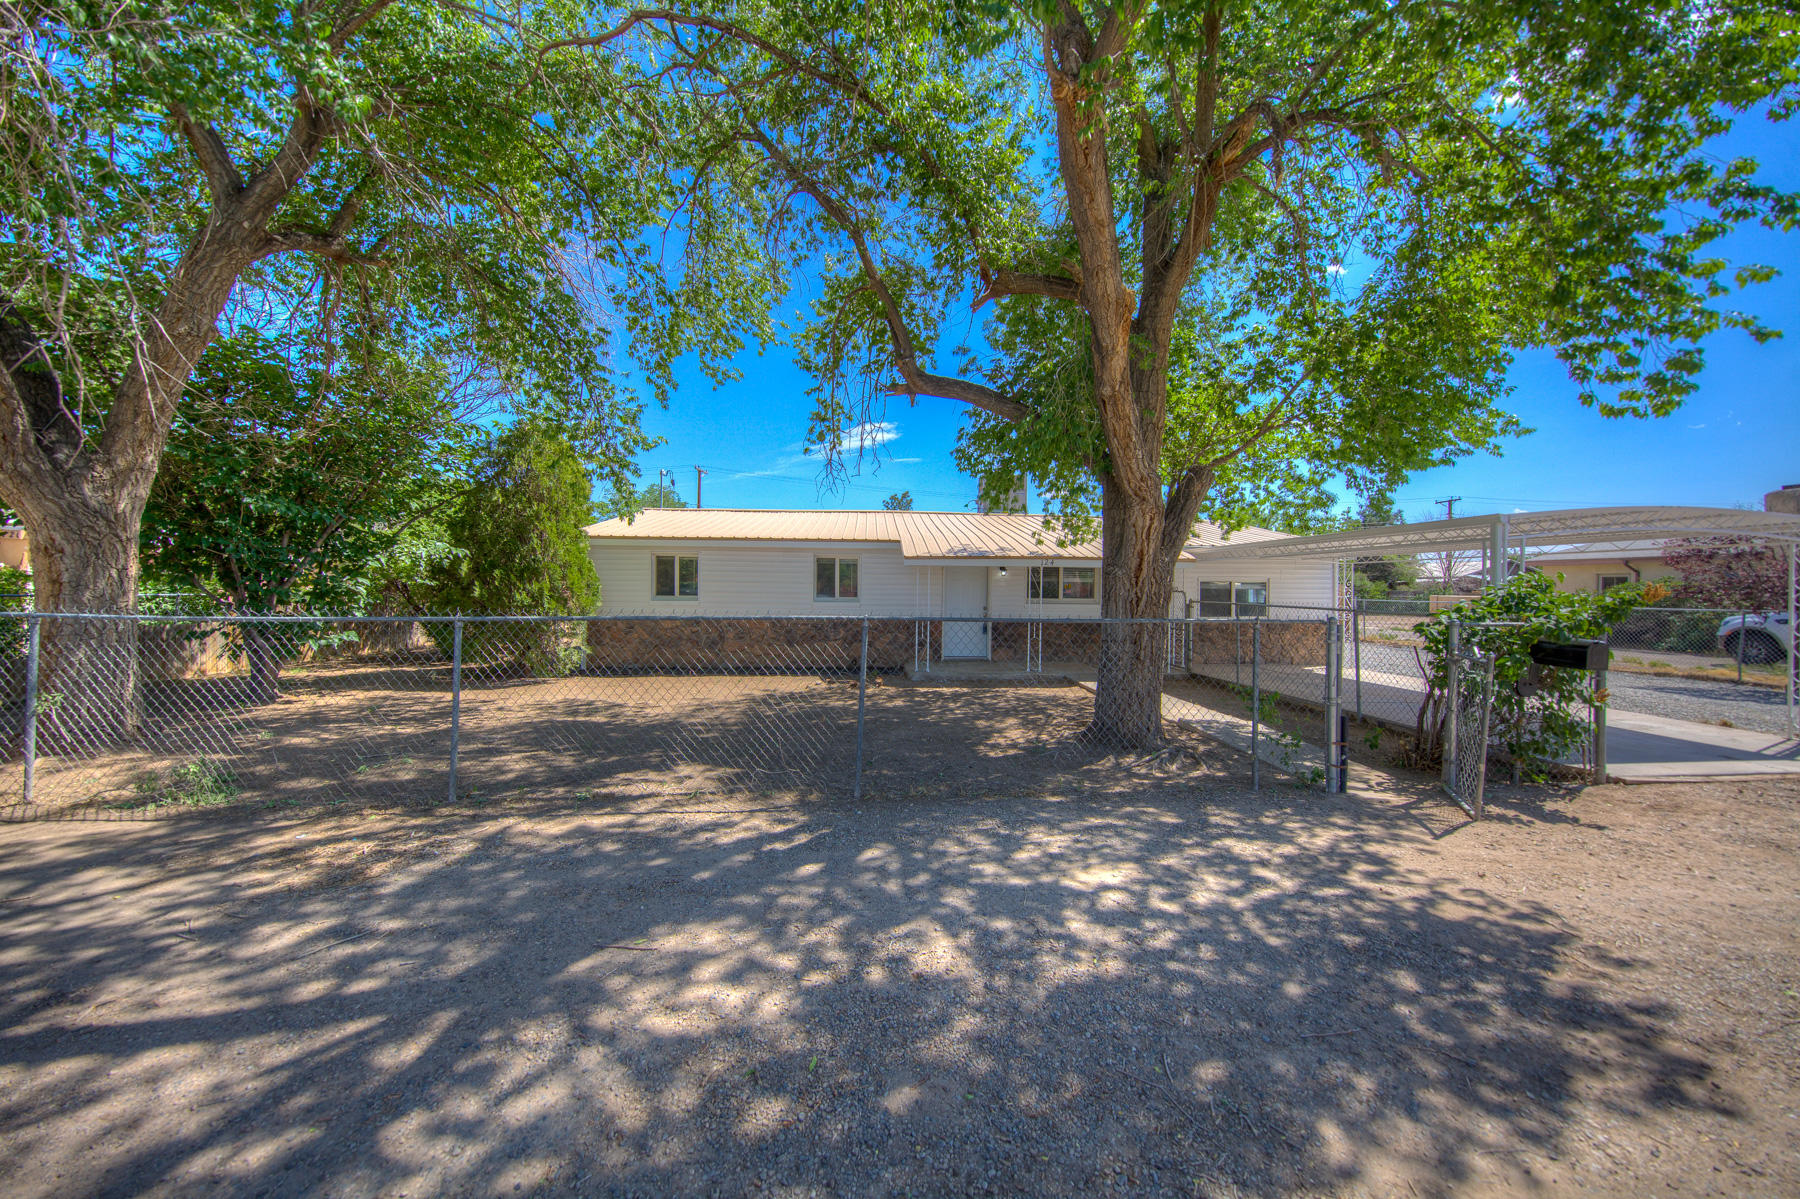 Welcome to this beautiful North Valley Home! New floors, new paint, new cabinets. Back yard access! Come bring your toys and see your newhome today!